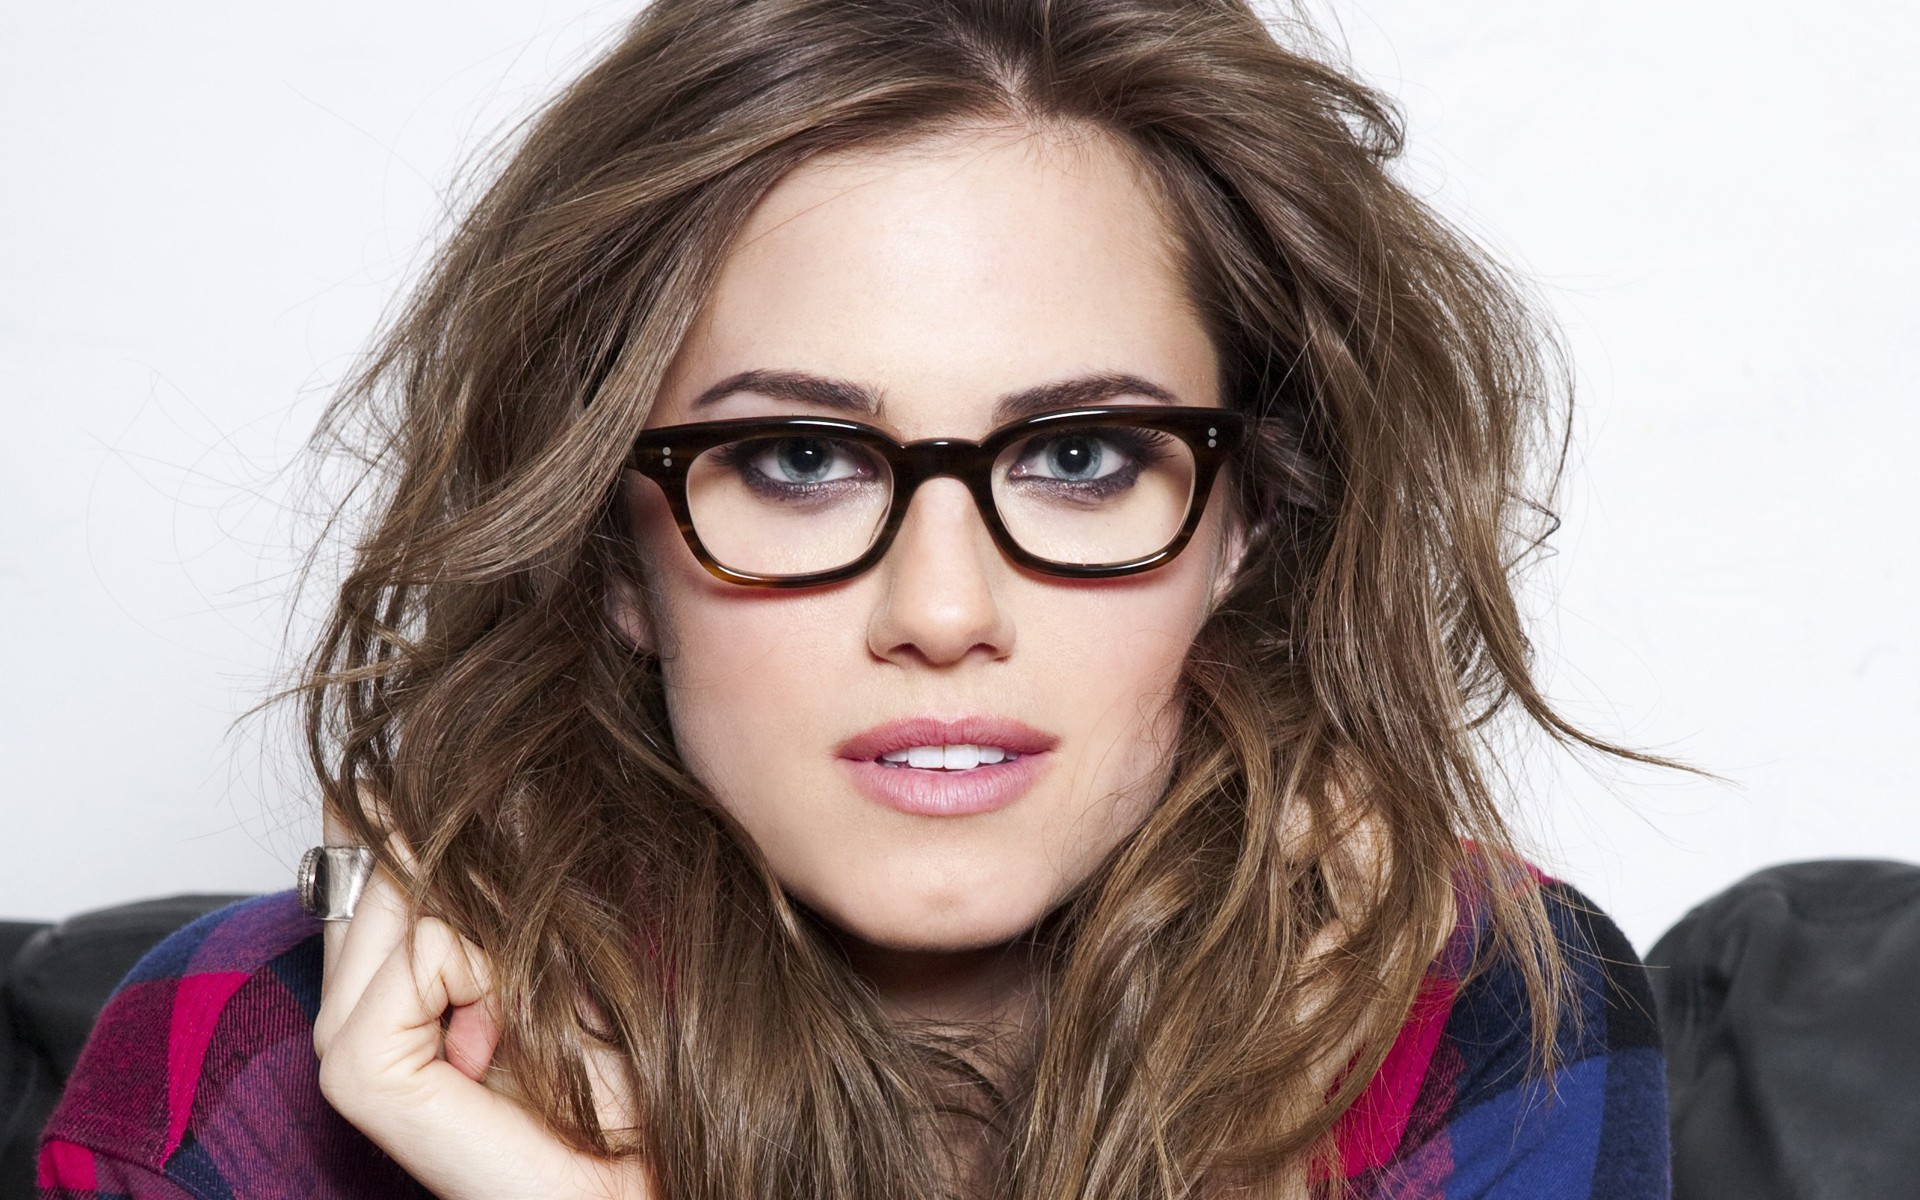 Girls With Glasses Picture